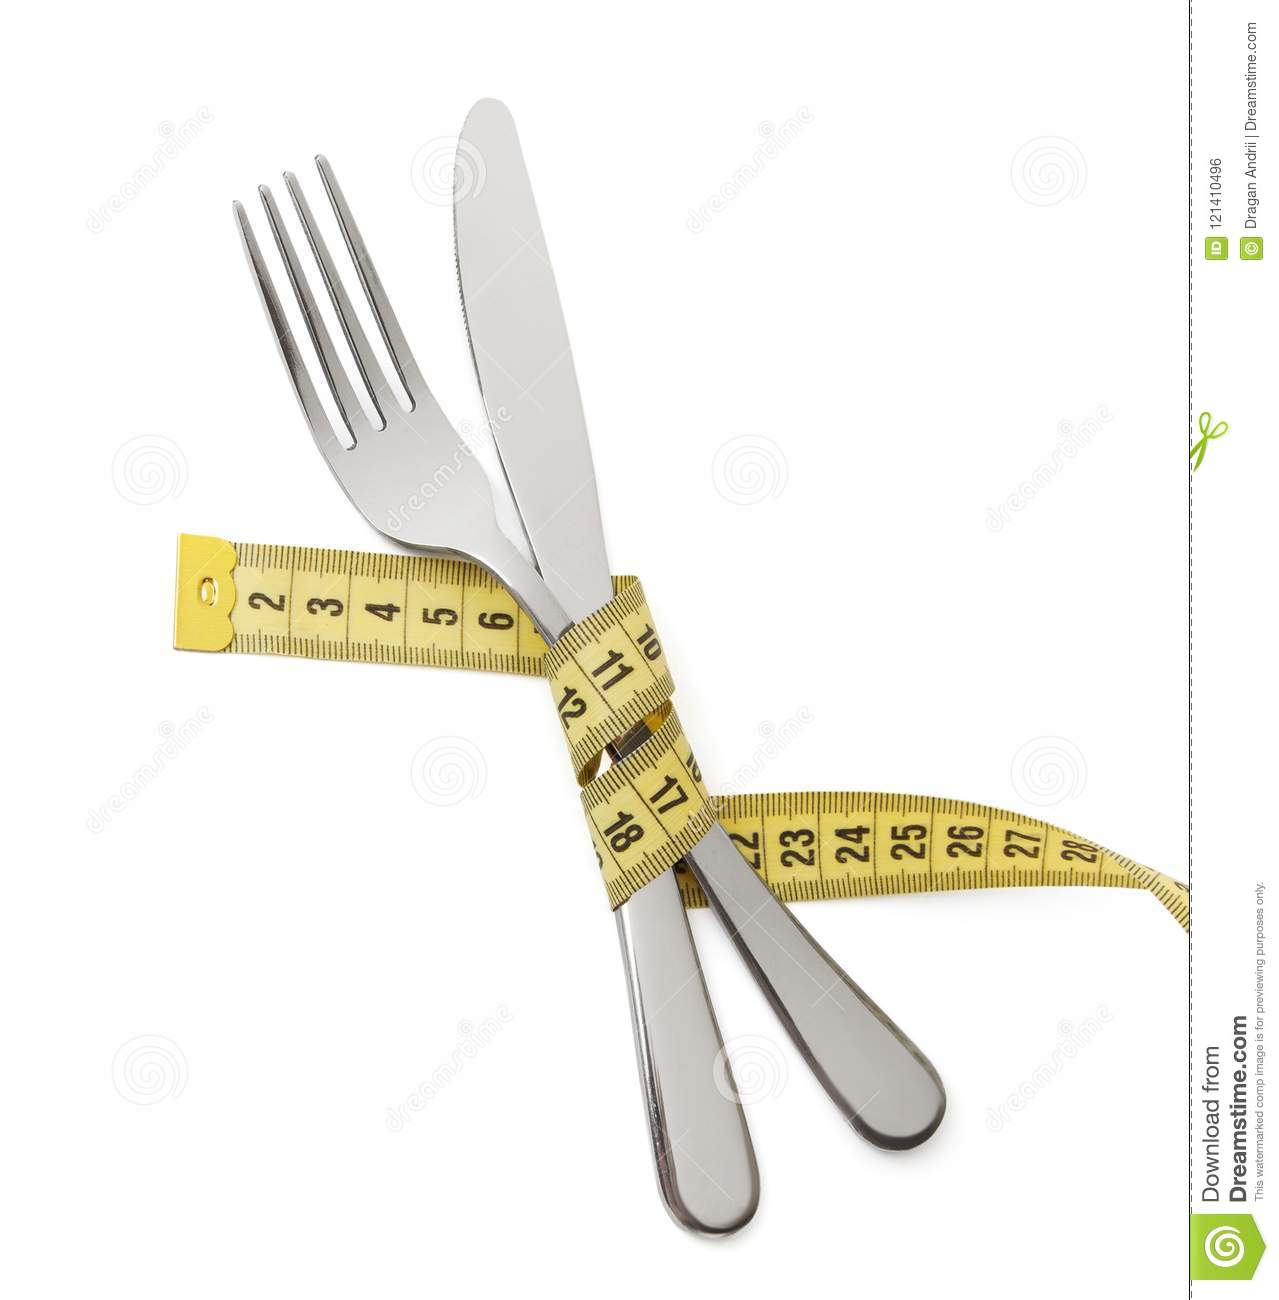 Japanese diet for weight loss. The fork and knife are wrapped in yellow measuring tape on white isolated